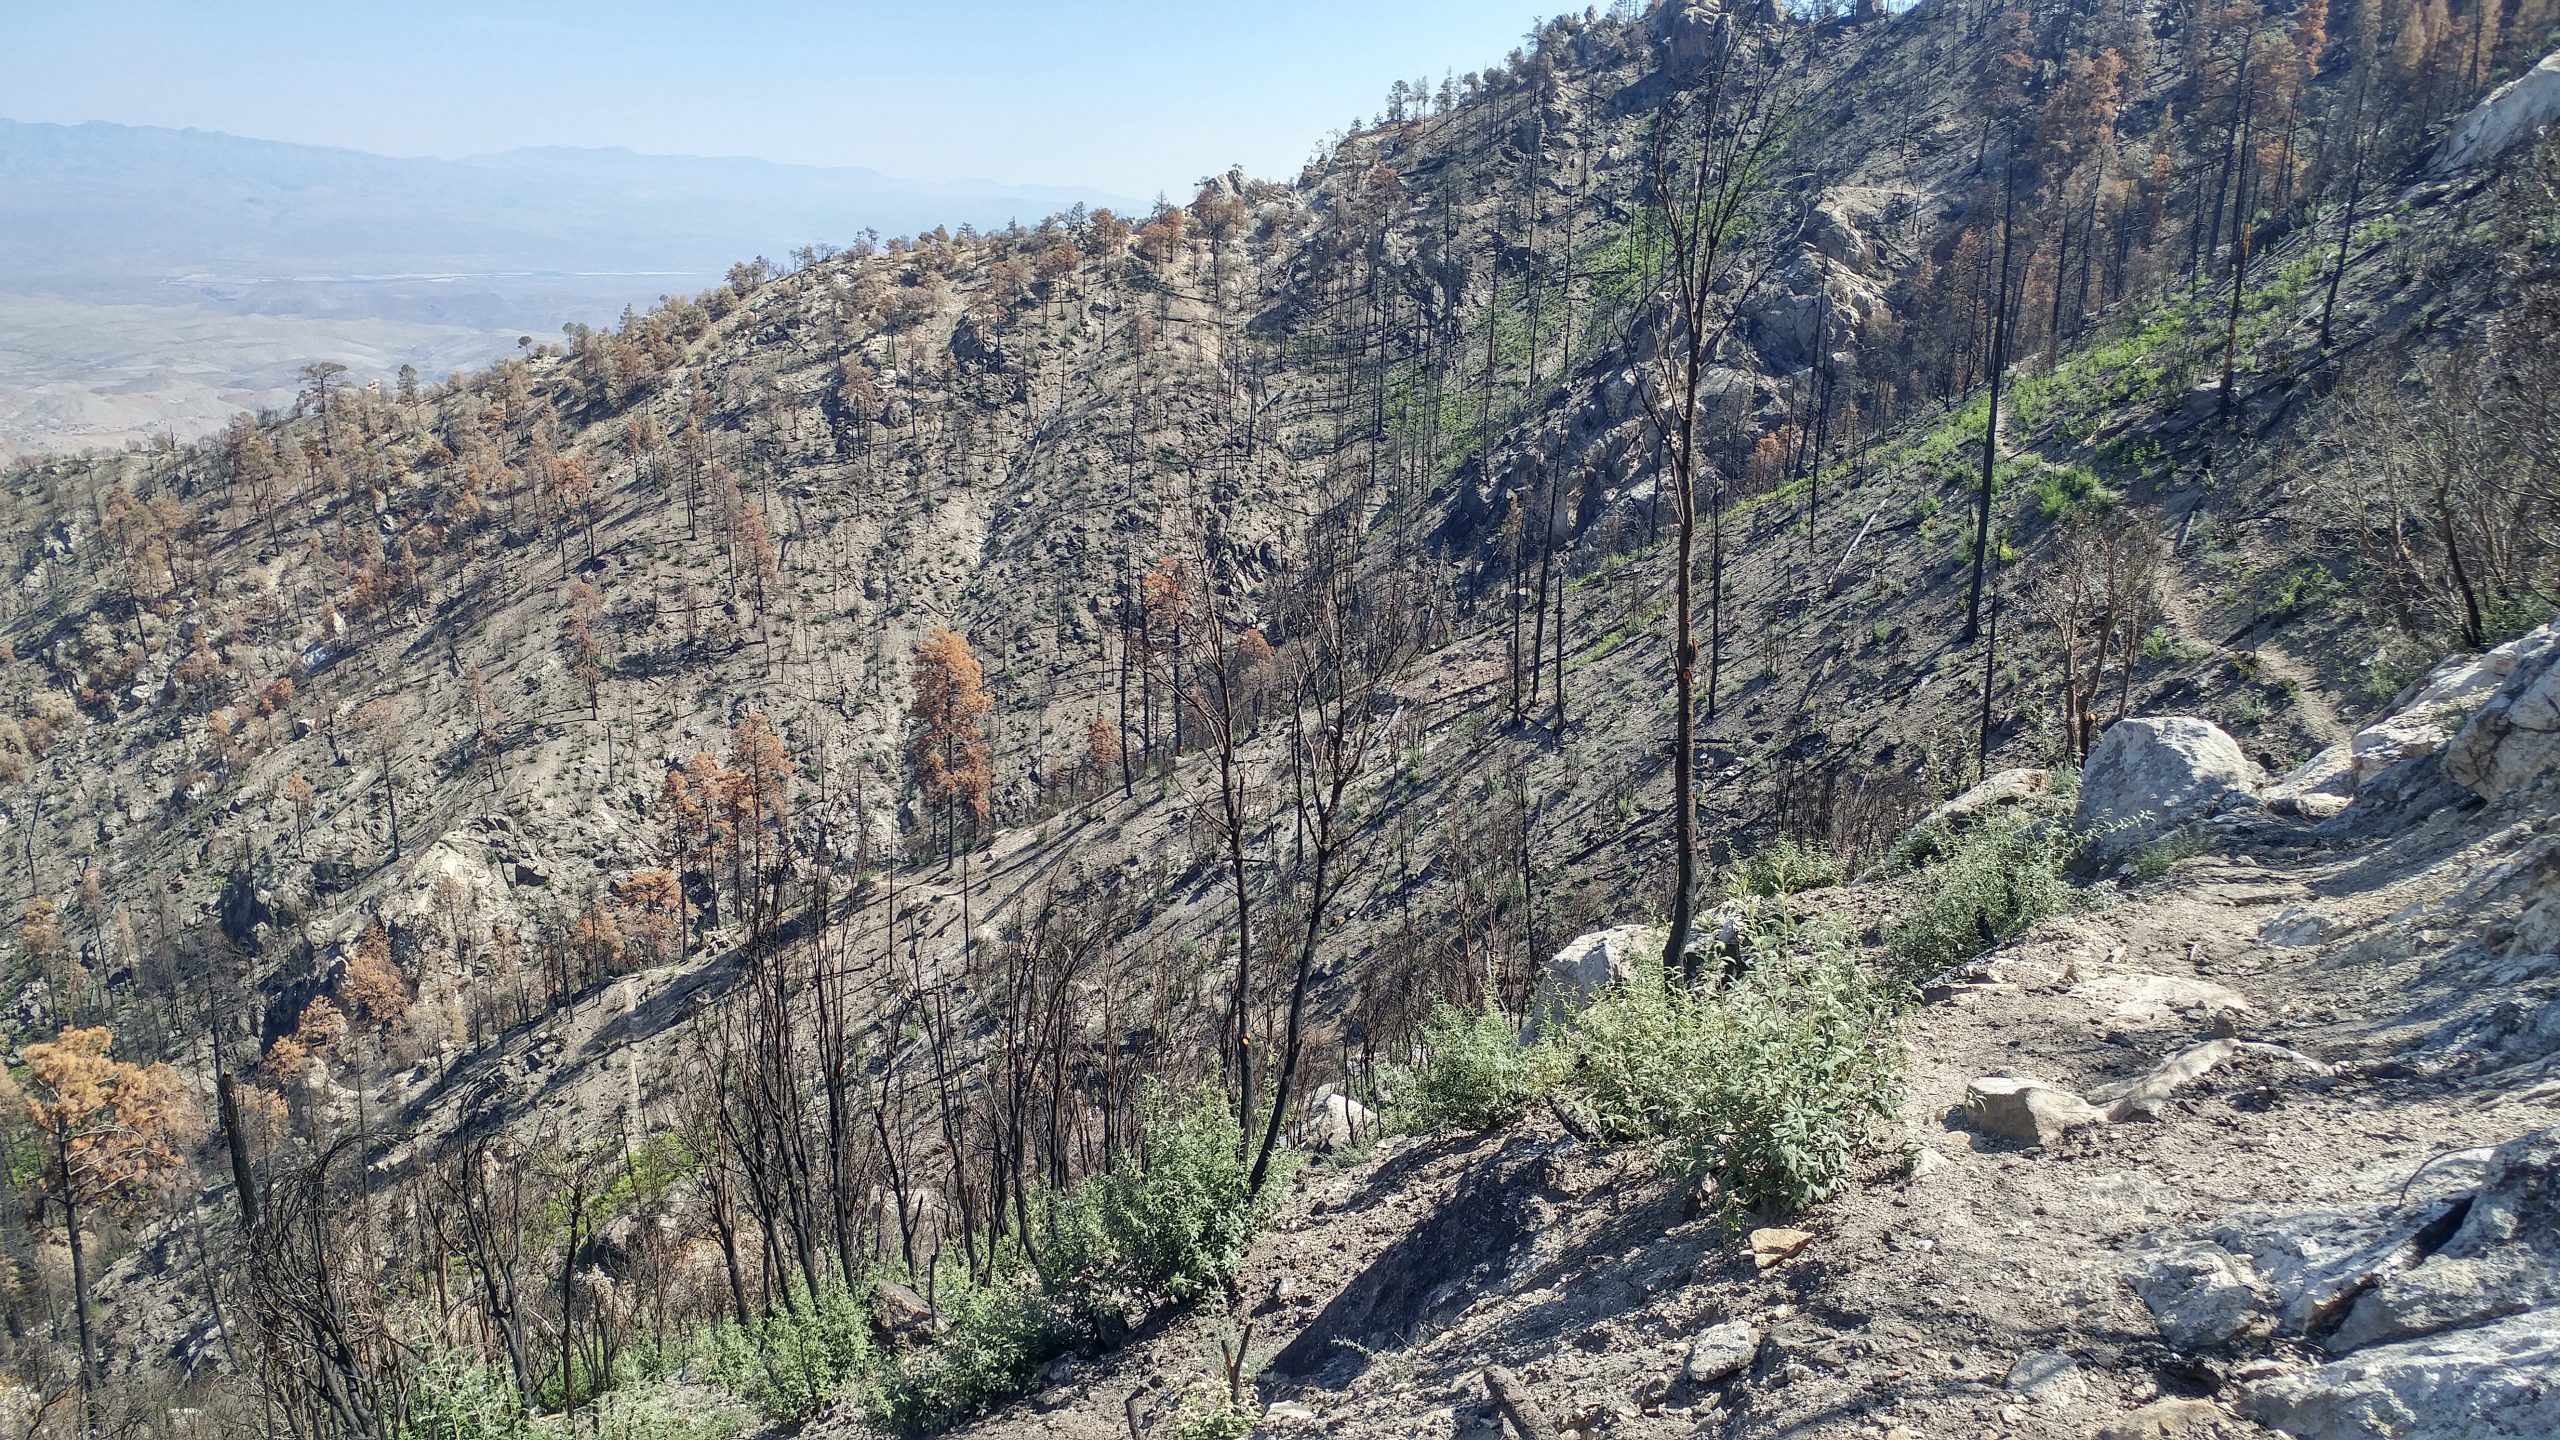 Arizona Trail Through Santa Catalina Mountains Reopens After 10-Month Fire Closure